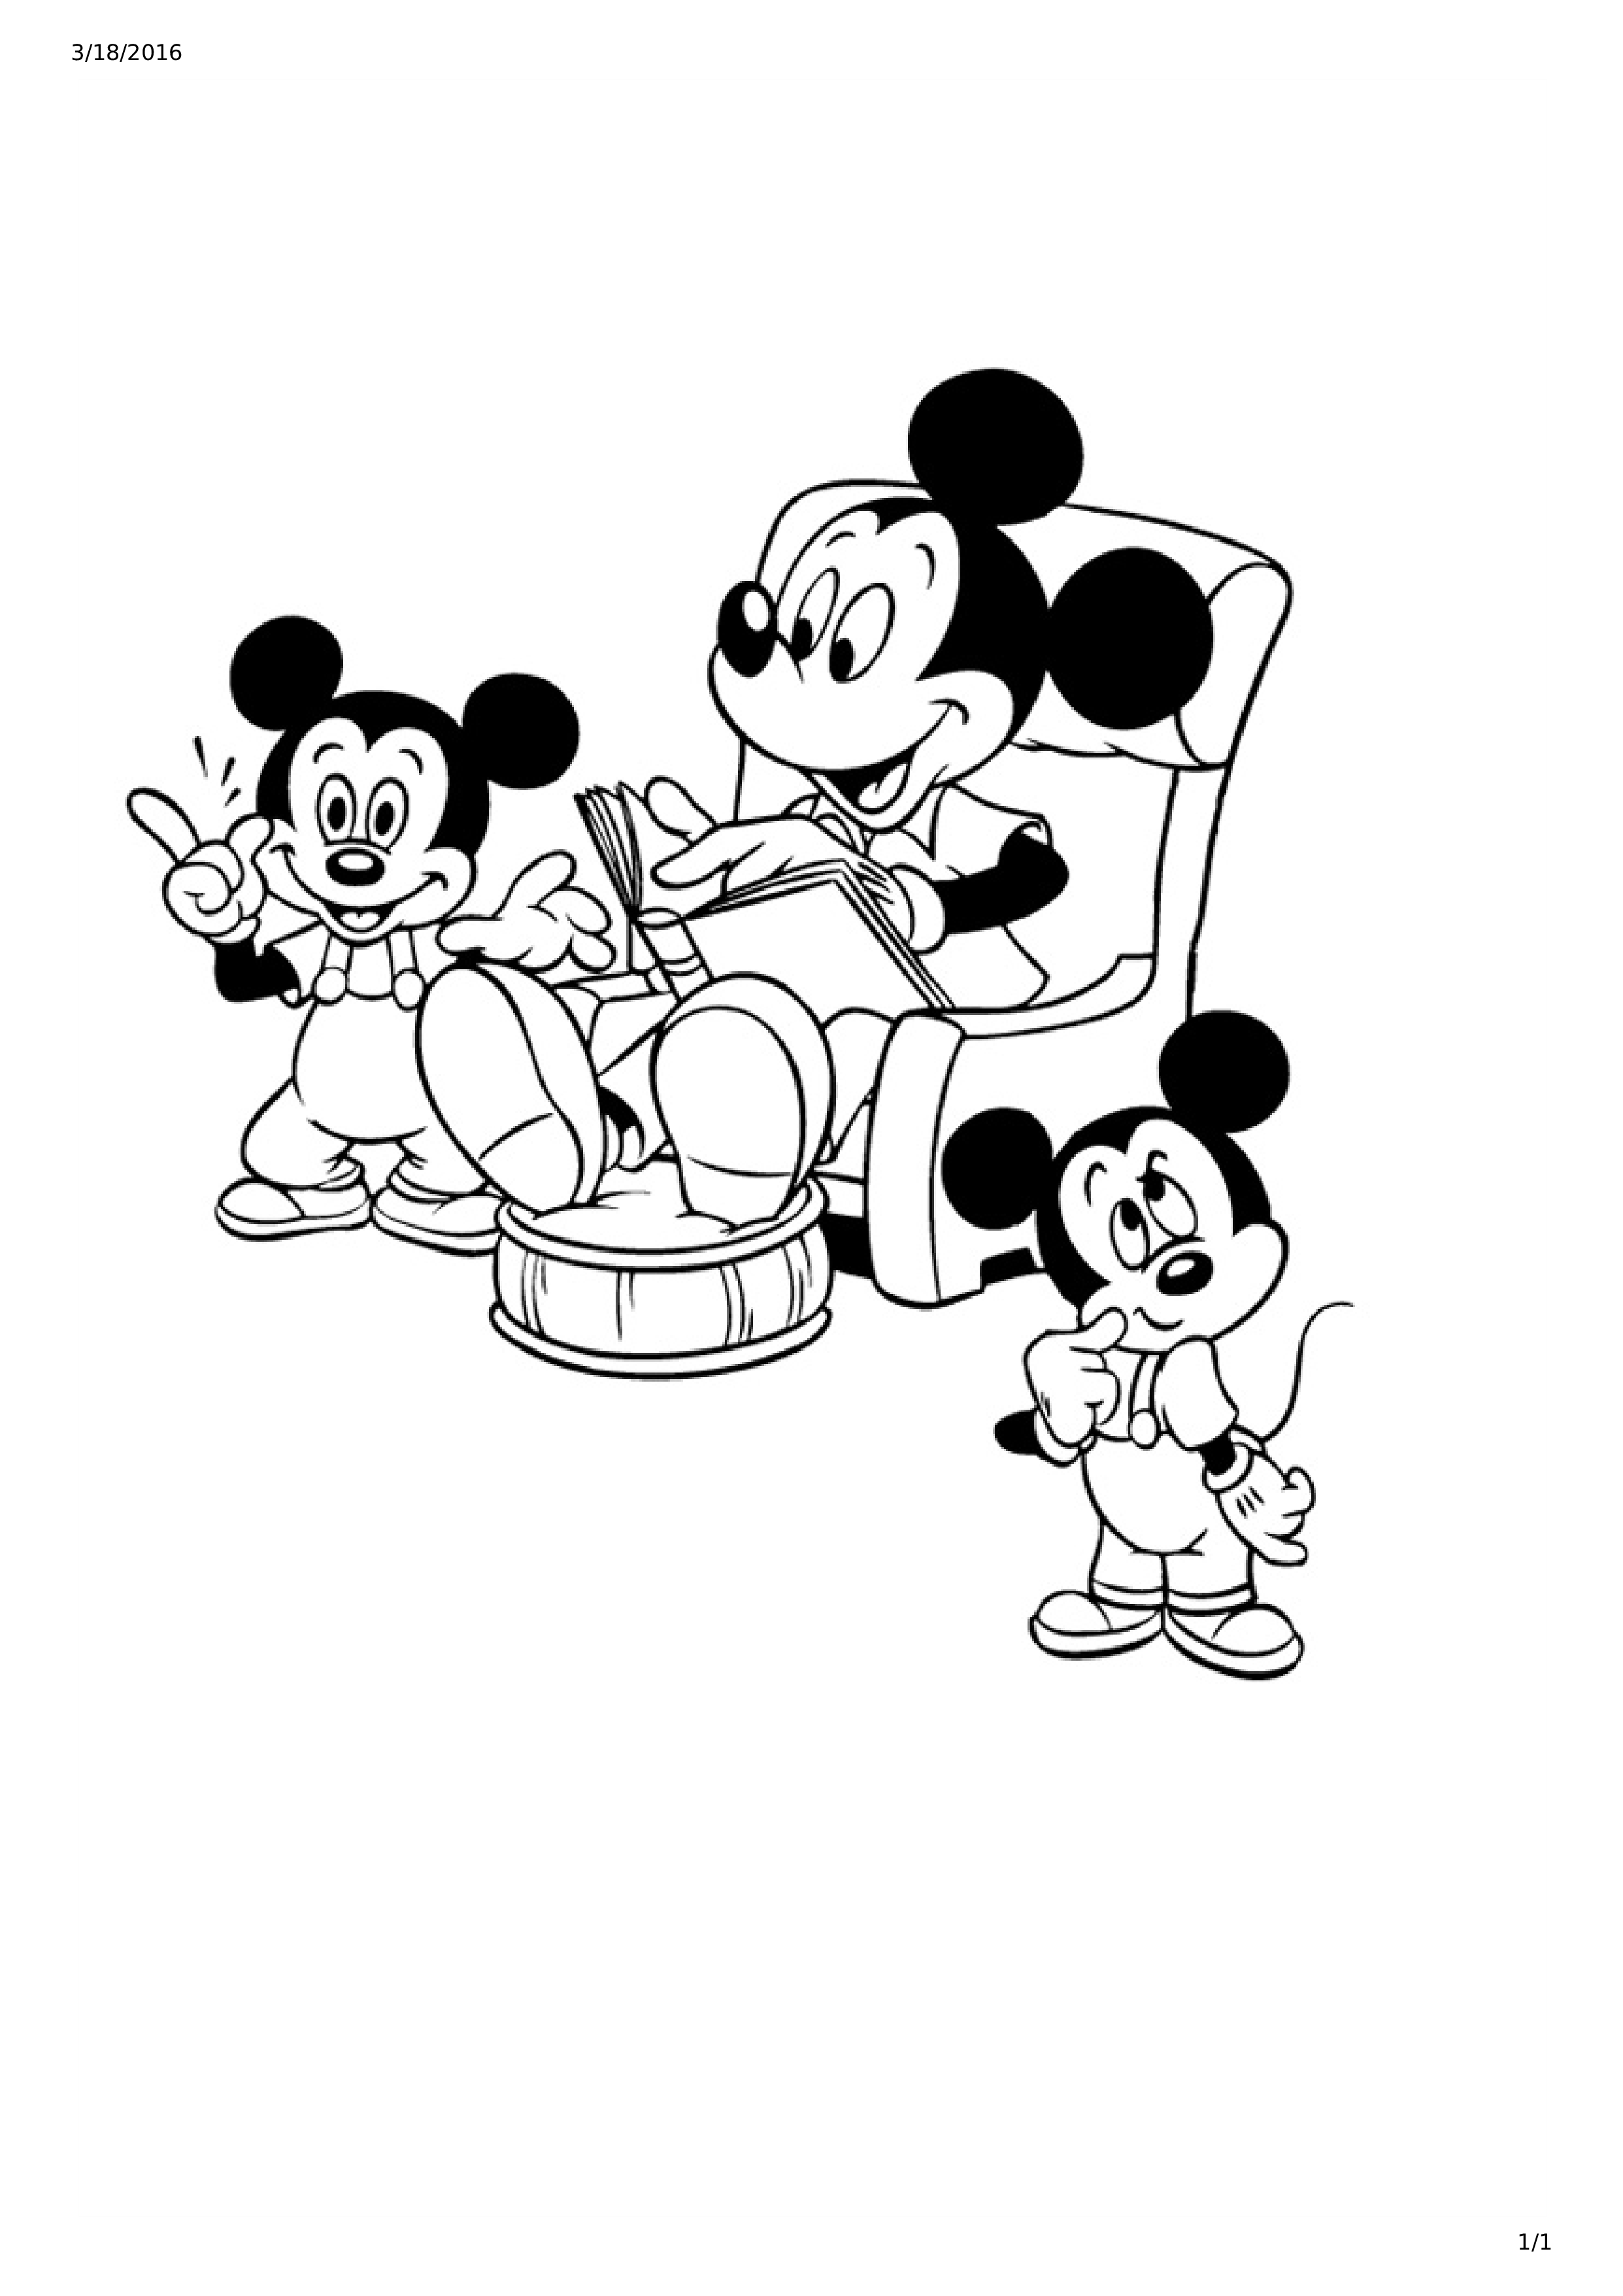 mickey mouse and friends coloring page for kids mickey mouse and